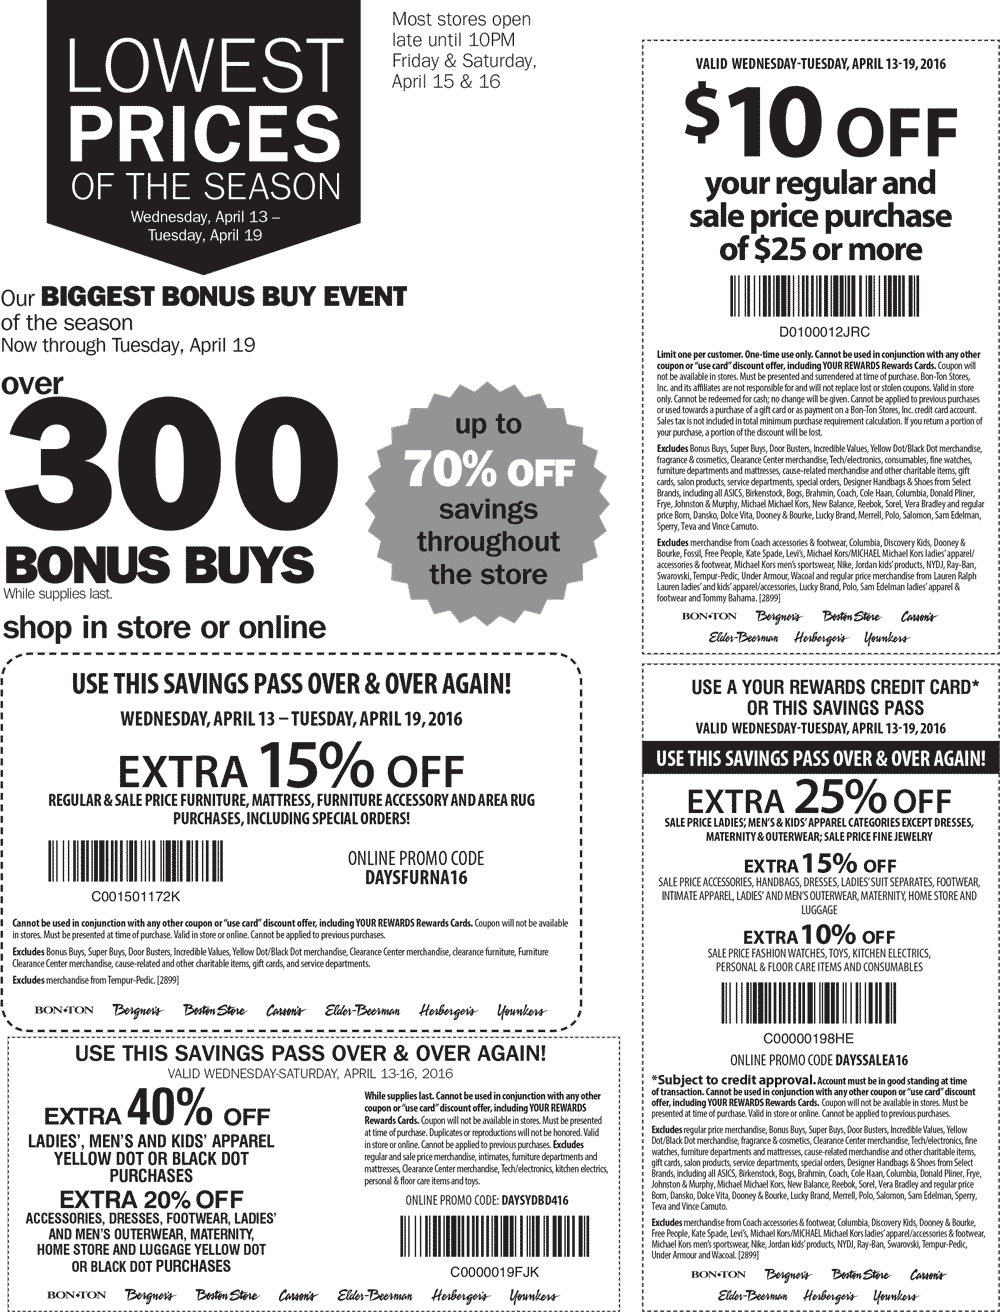 Carsons Coupon January 2017 $10 off $25 & more at Carsons, Bon Ton & sister stores, or 25% online via promo code DAYSSALEA16